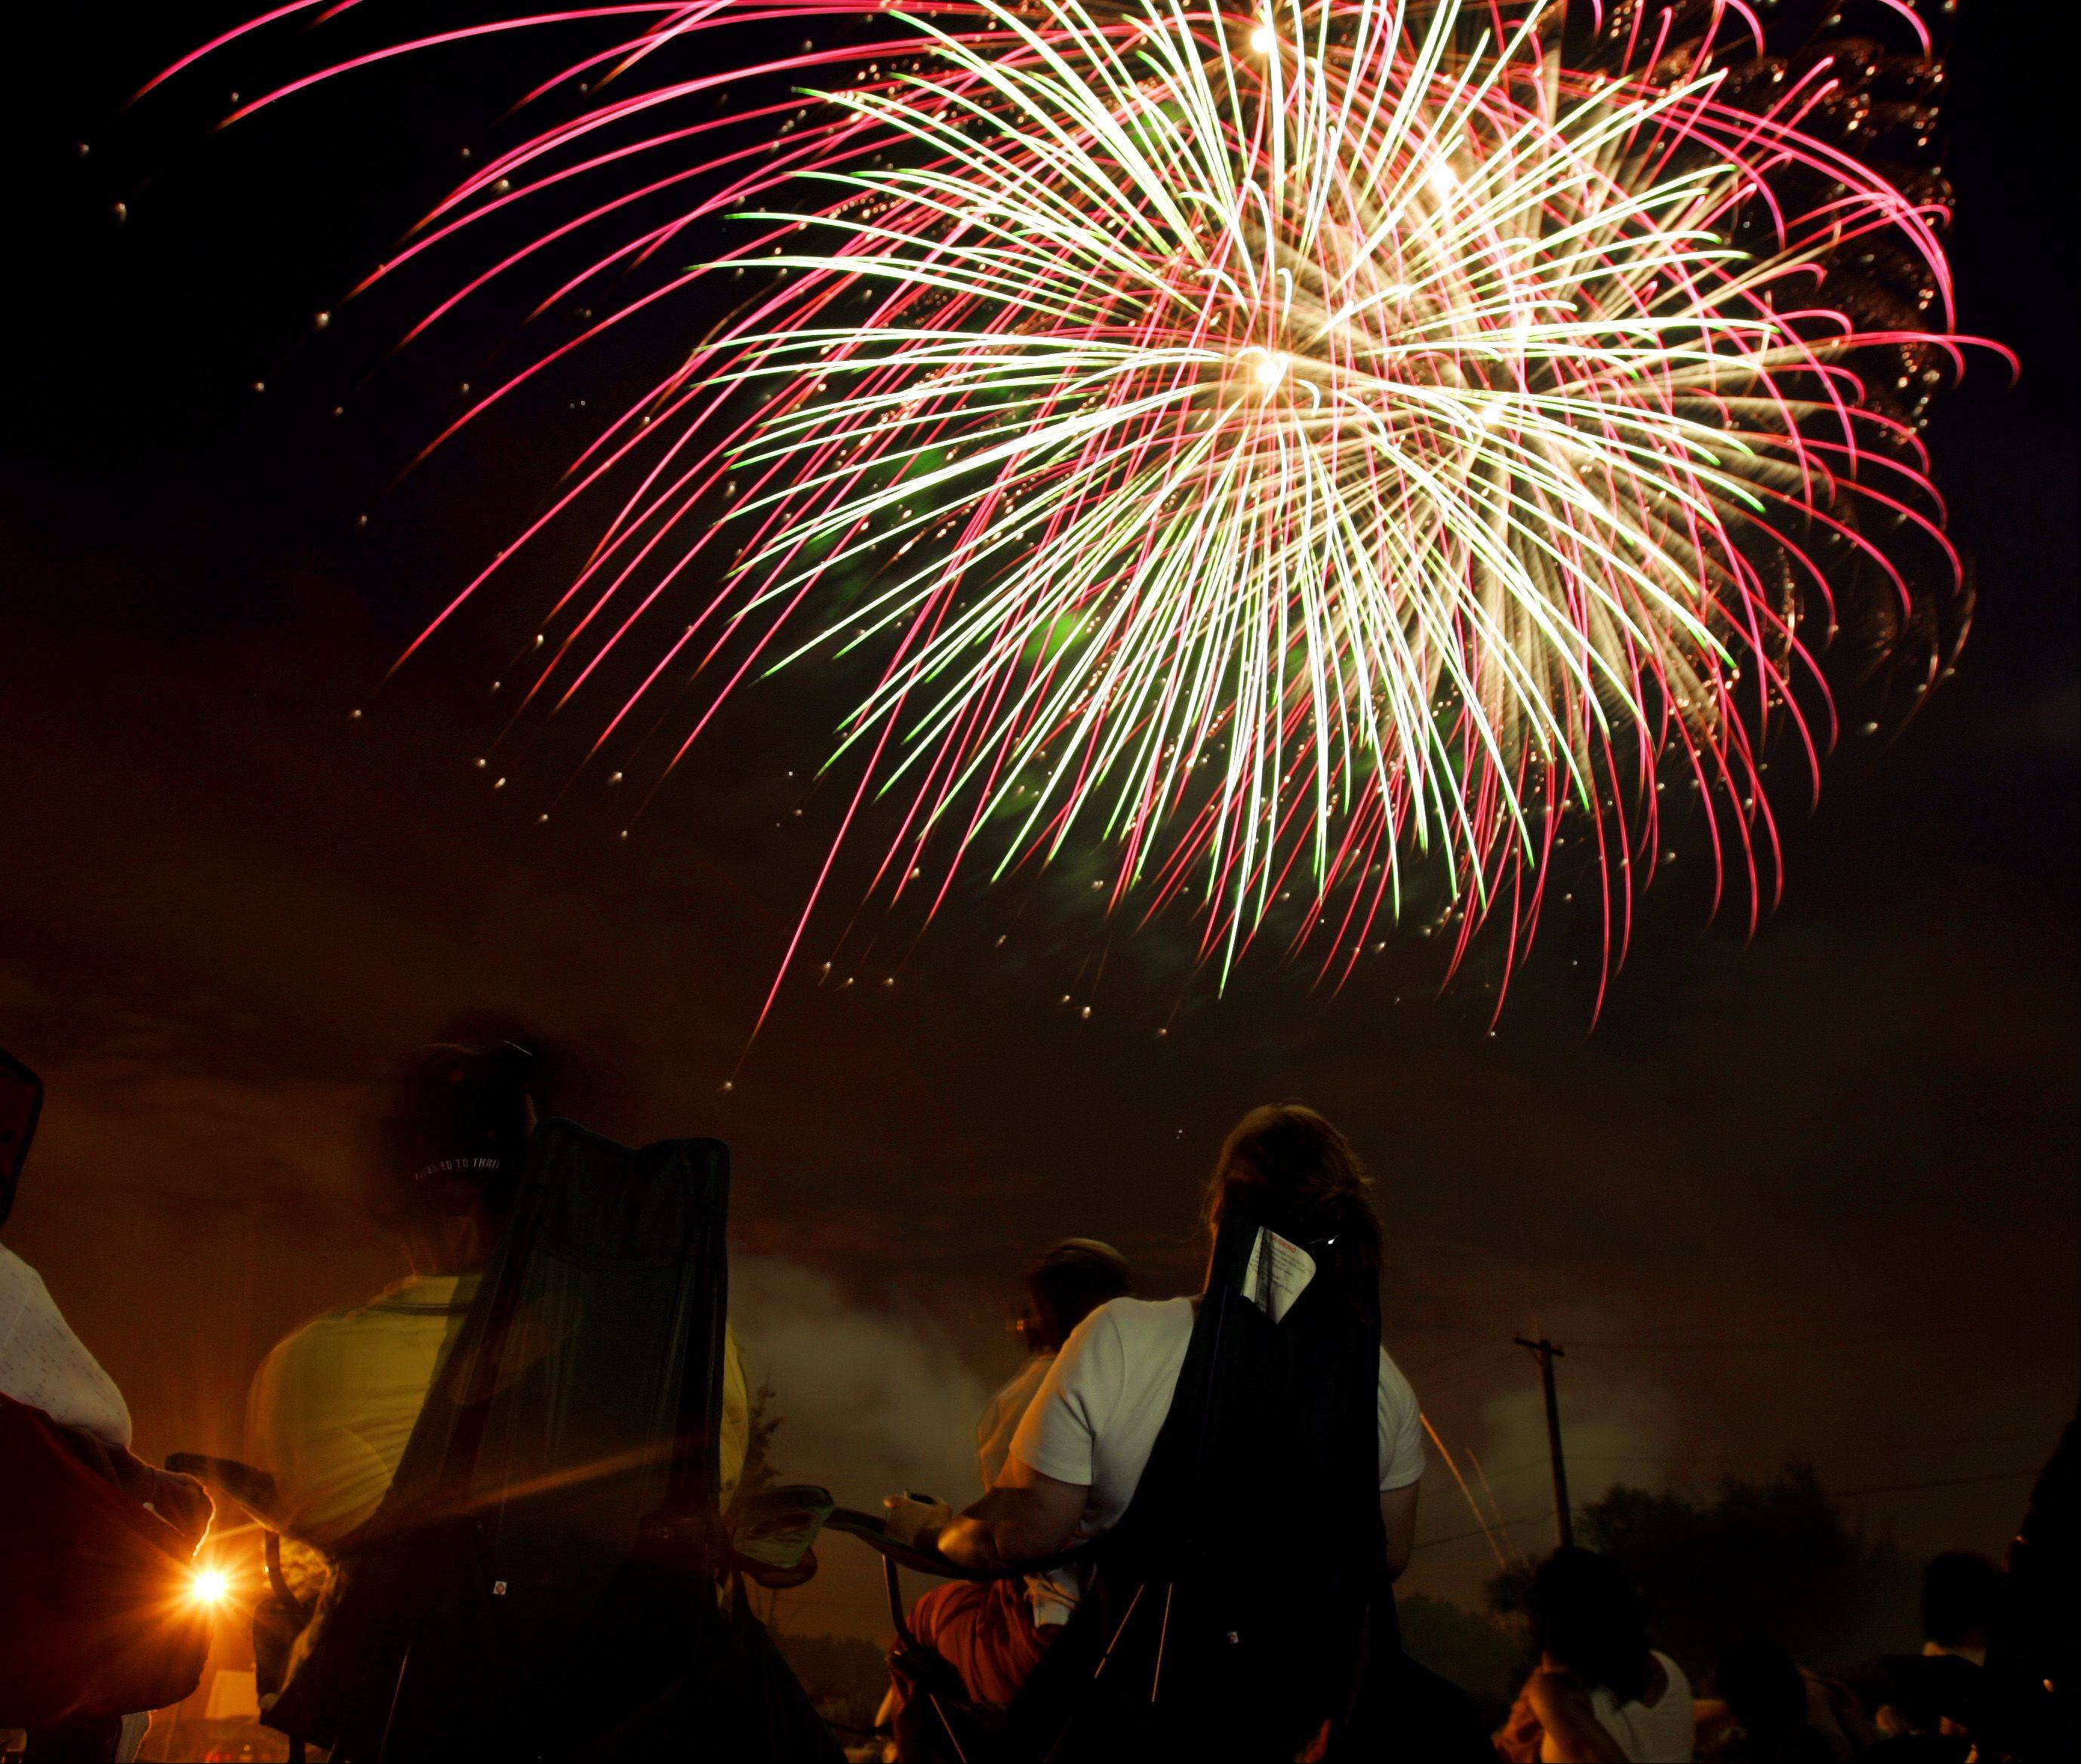 Millions of Americans will enjoy Independence Day fireworks away from home as holiday travel picks up thanks to declining gasoline prices.